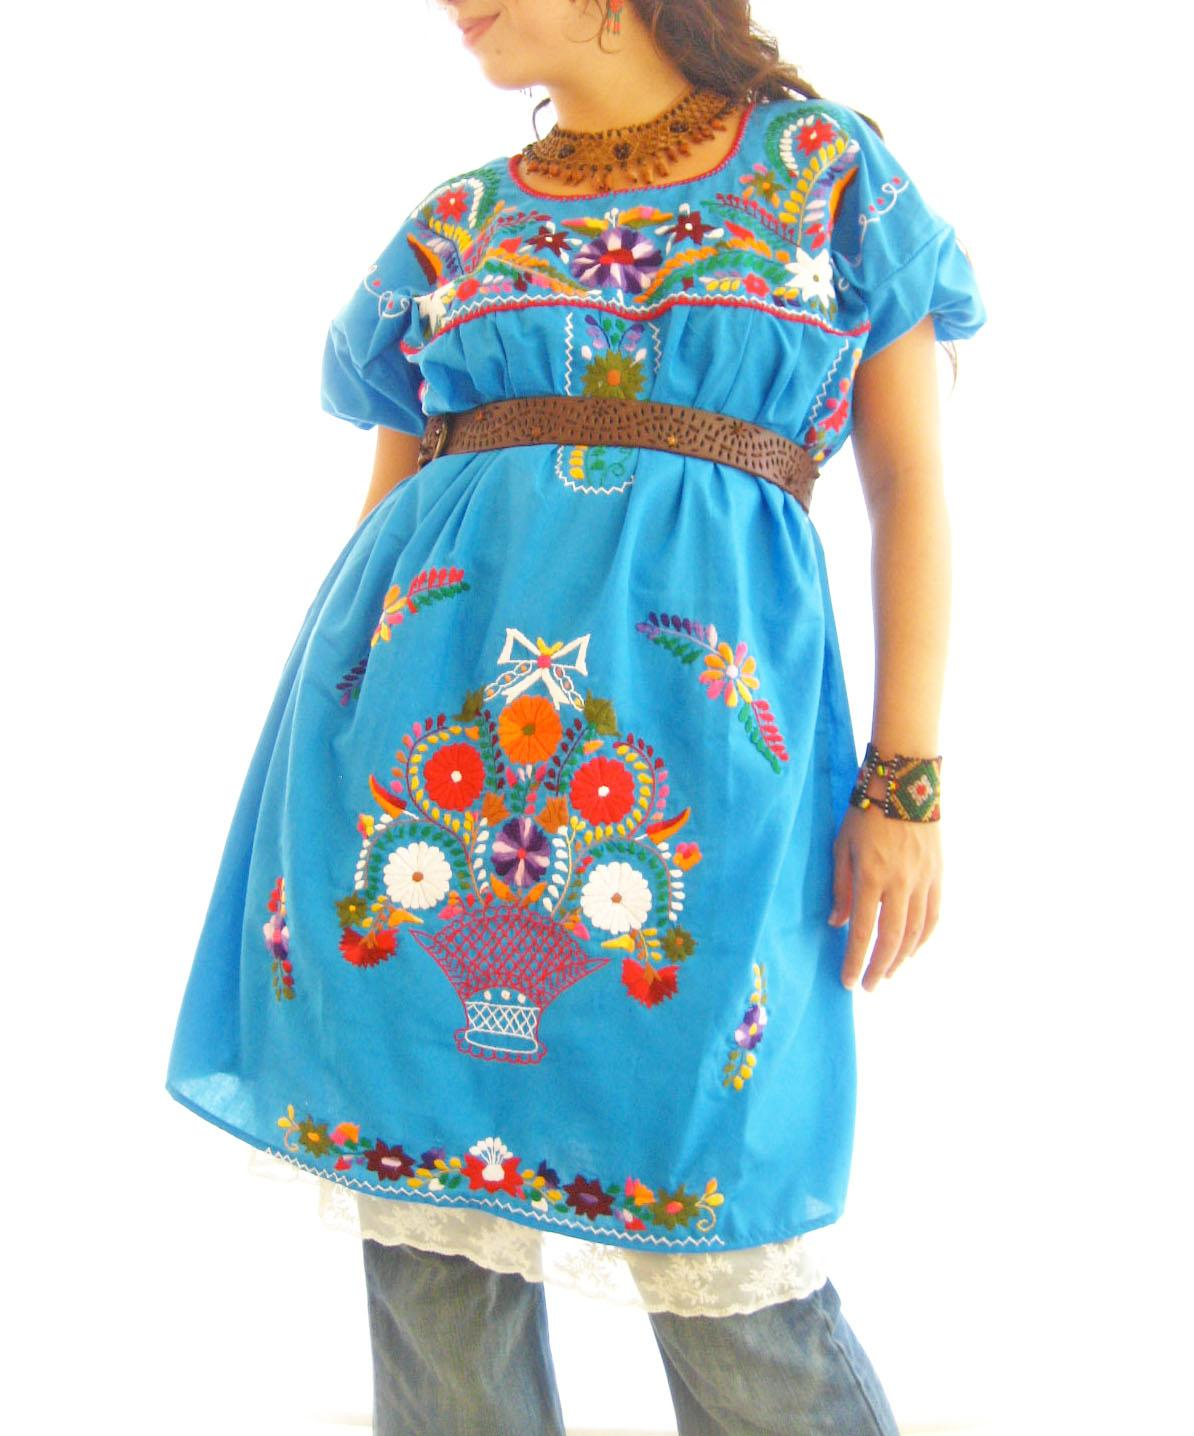 El Mar ocean blue gypsy chic embroidered summer dress